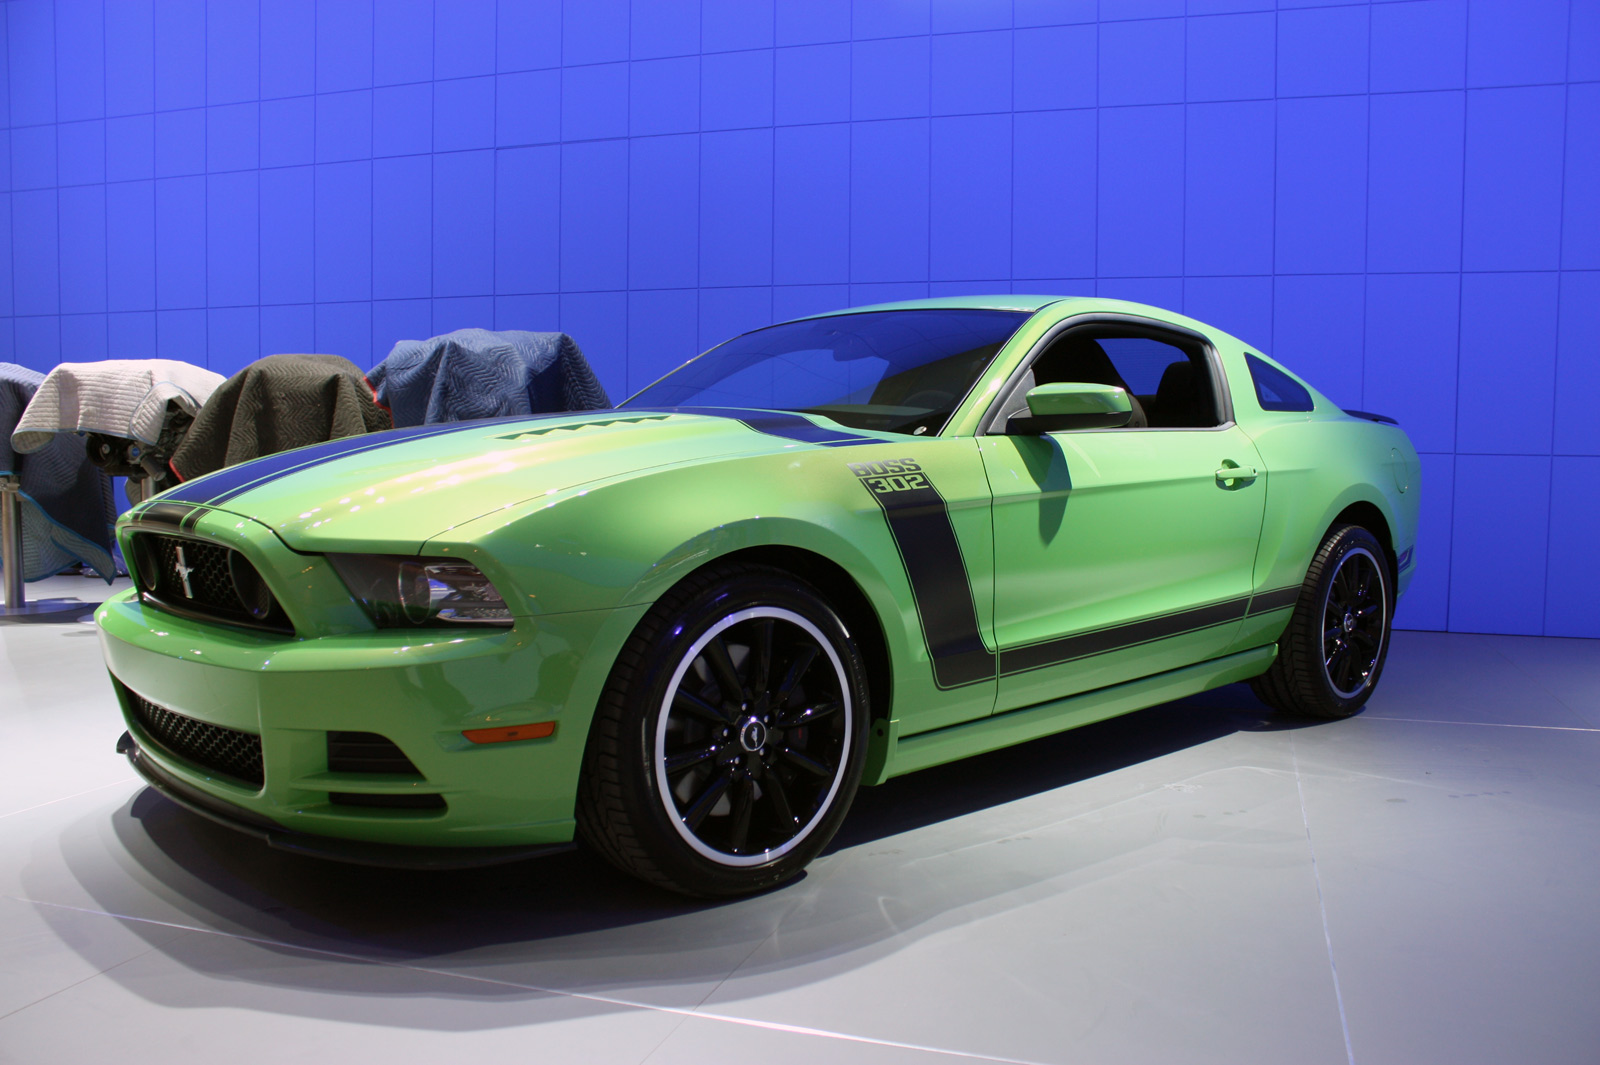 2013 Ford Mustang Boss 302 photo - 1